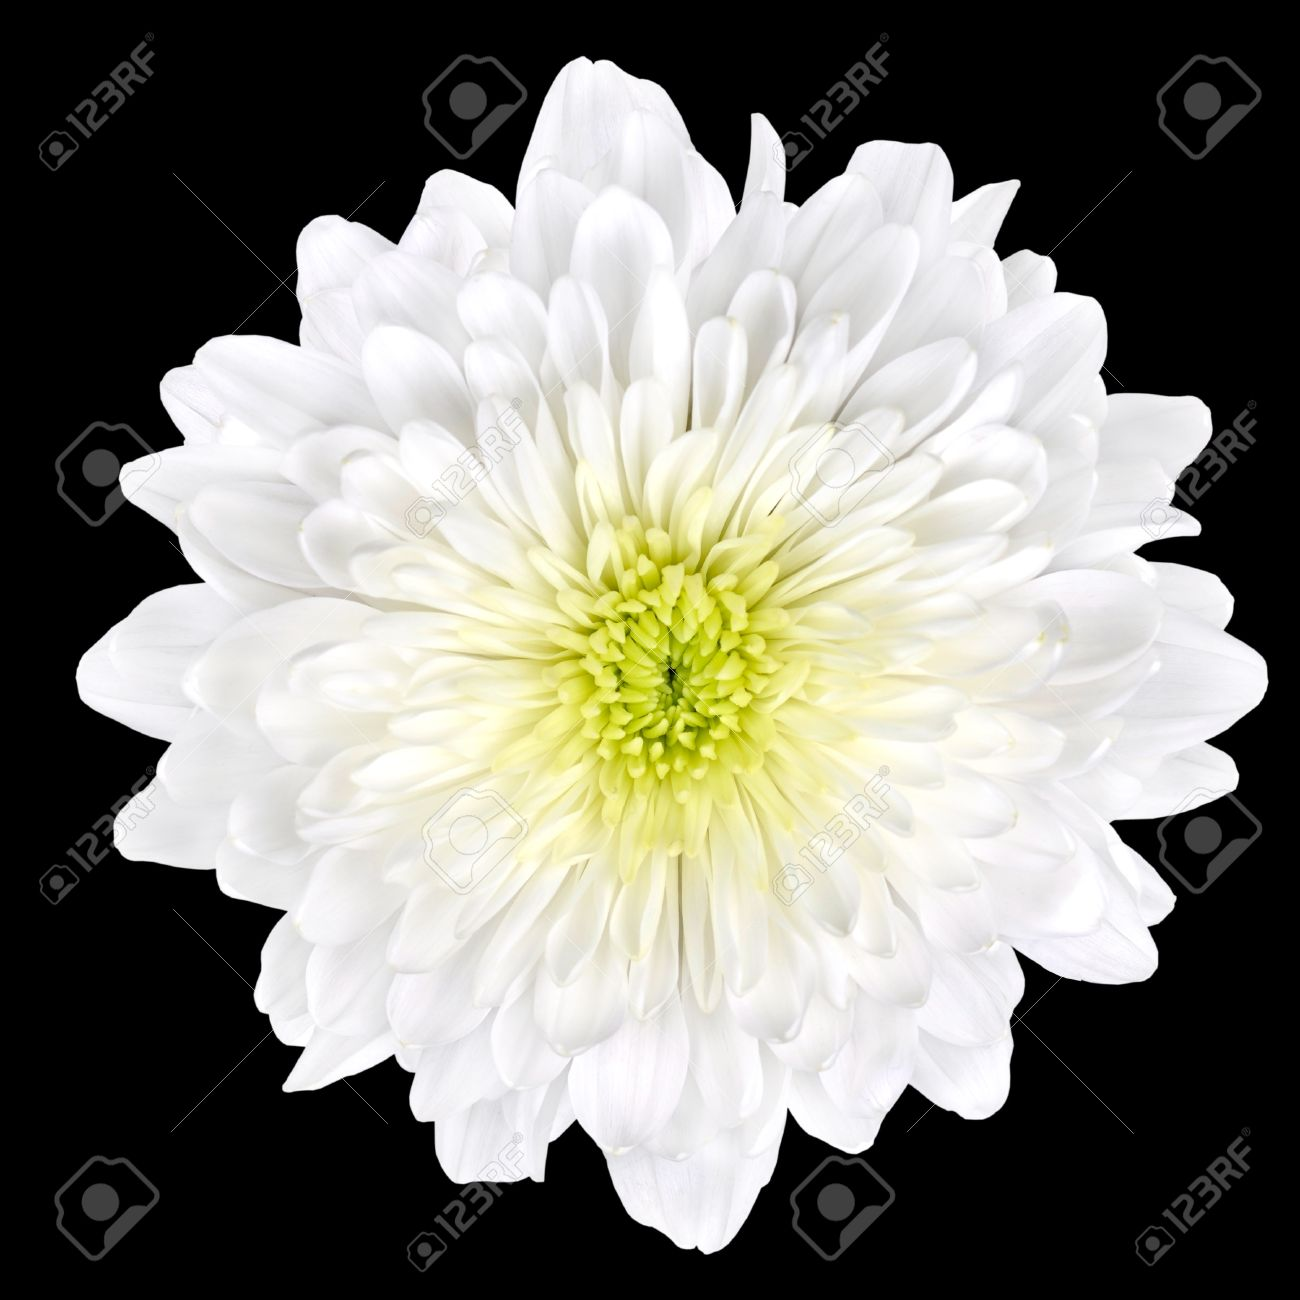 Single White Chrysanthemum Flower With Yellow Center Isolated ...